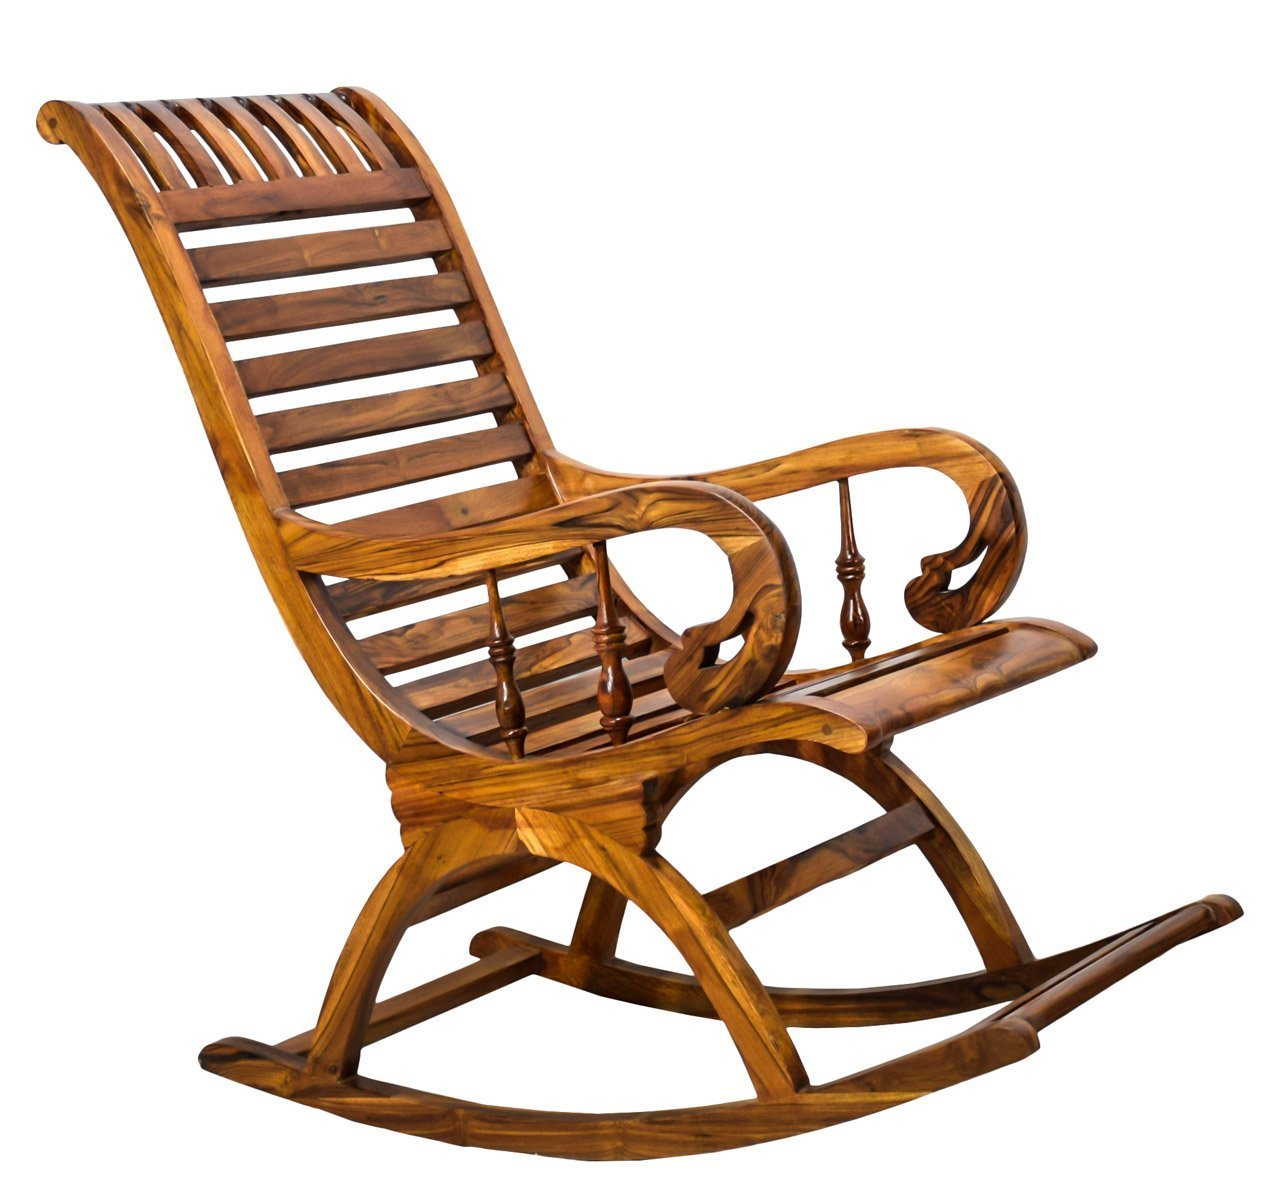 Salvage That Old Wooden Chair